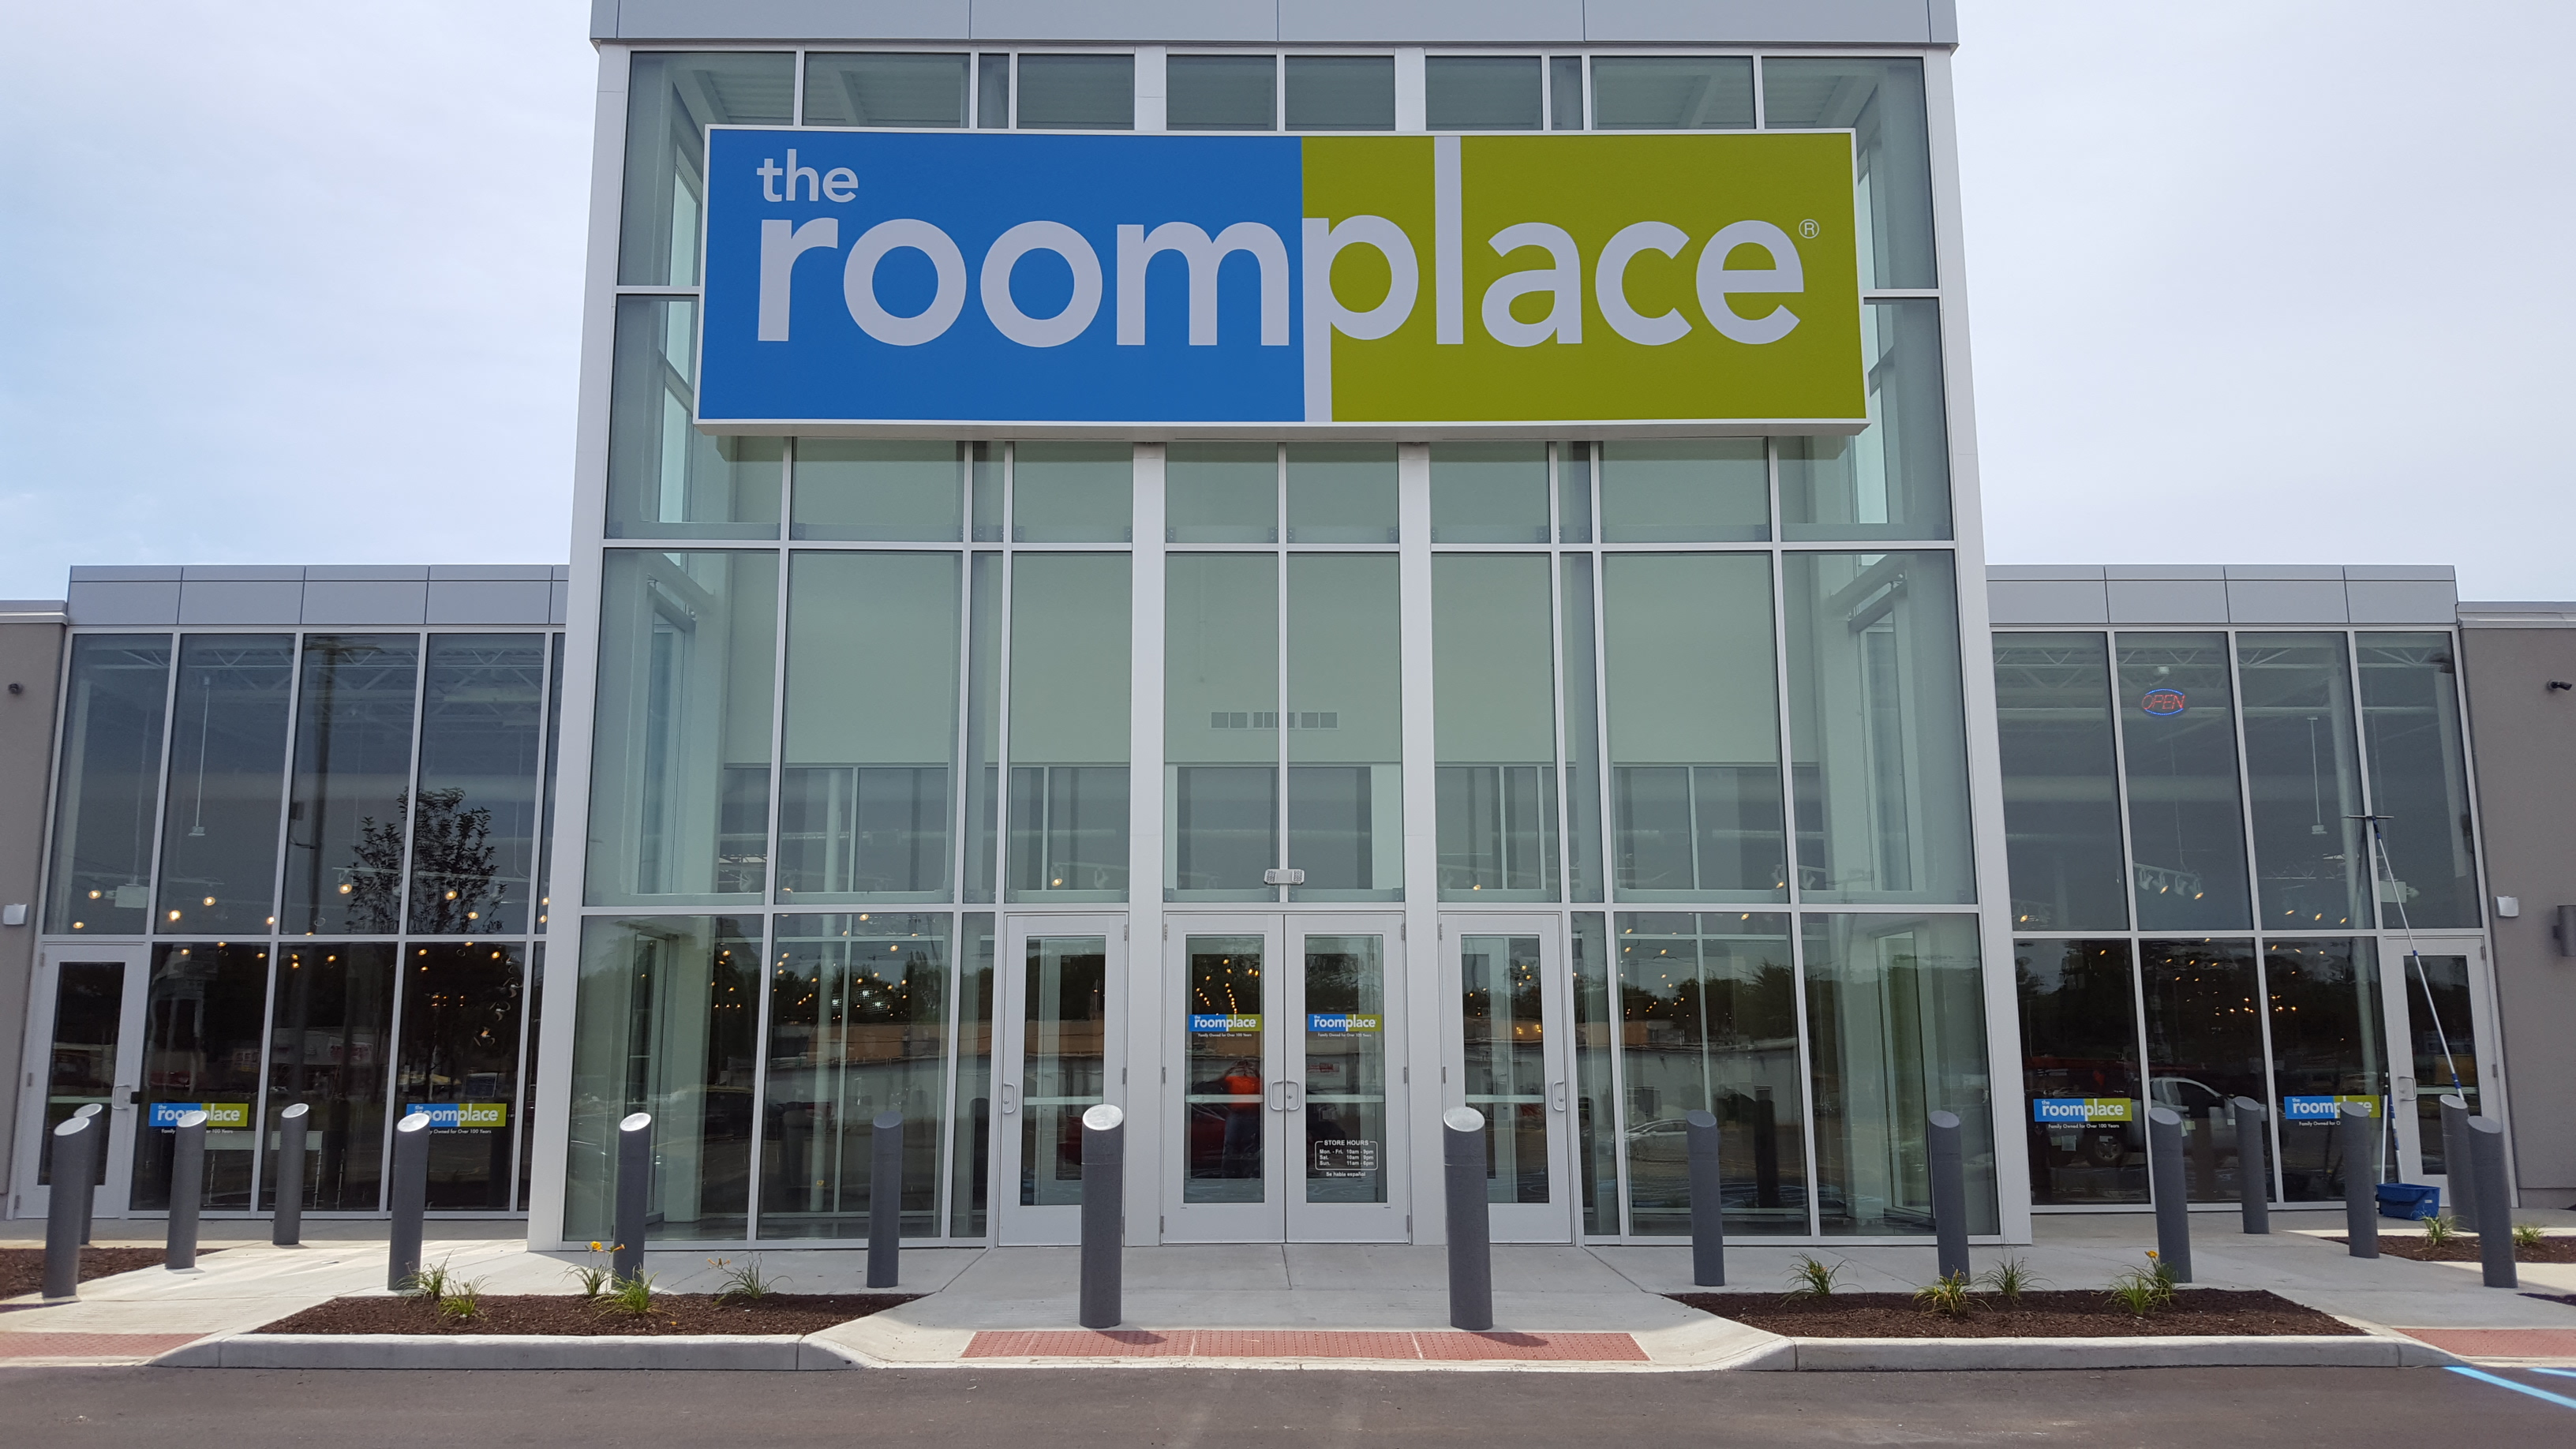 The Roomplace Opens Its Newest Store In Indianapolis Furniture Today